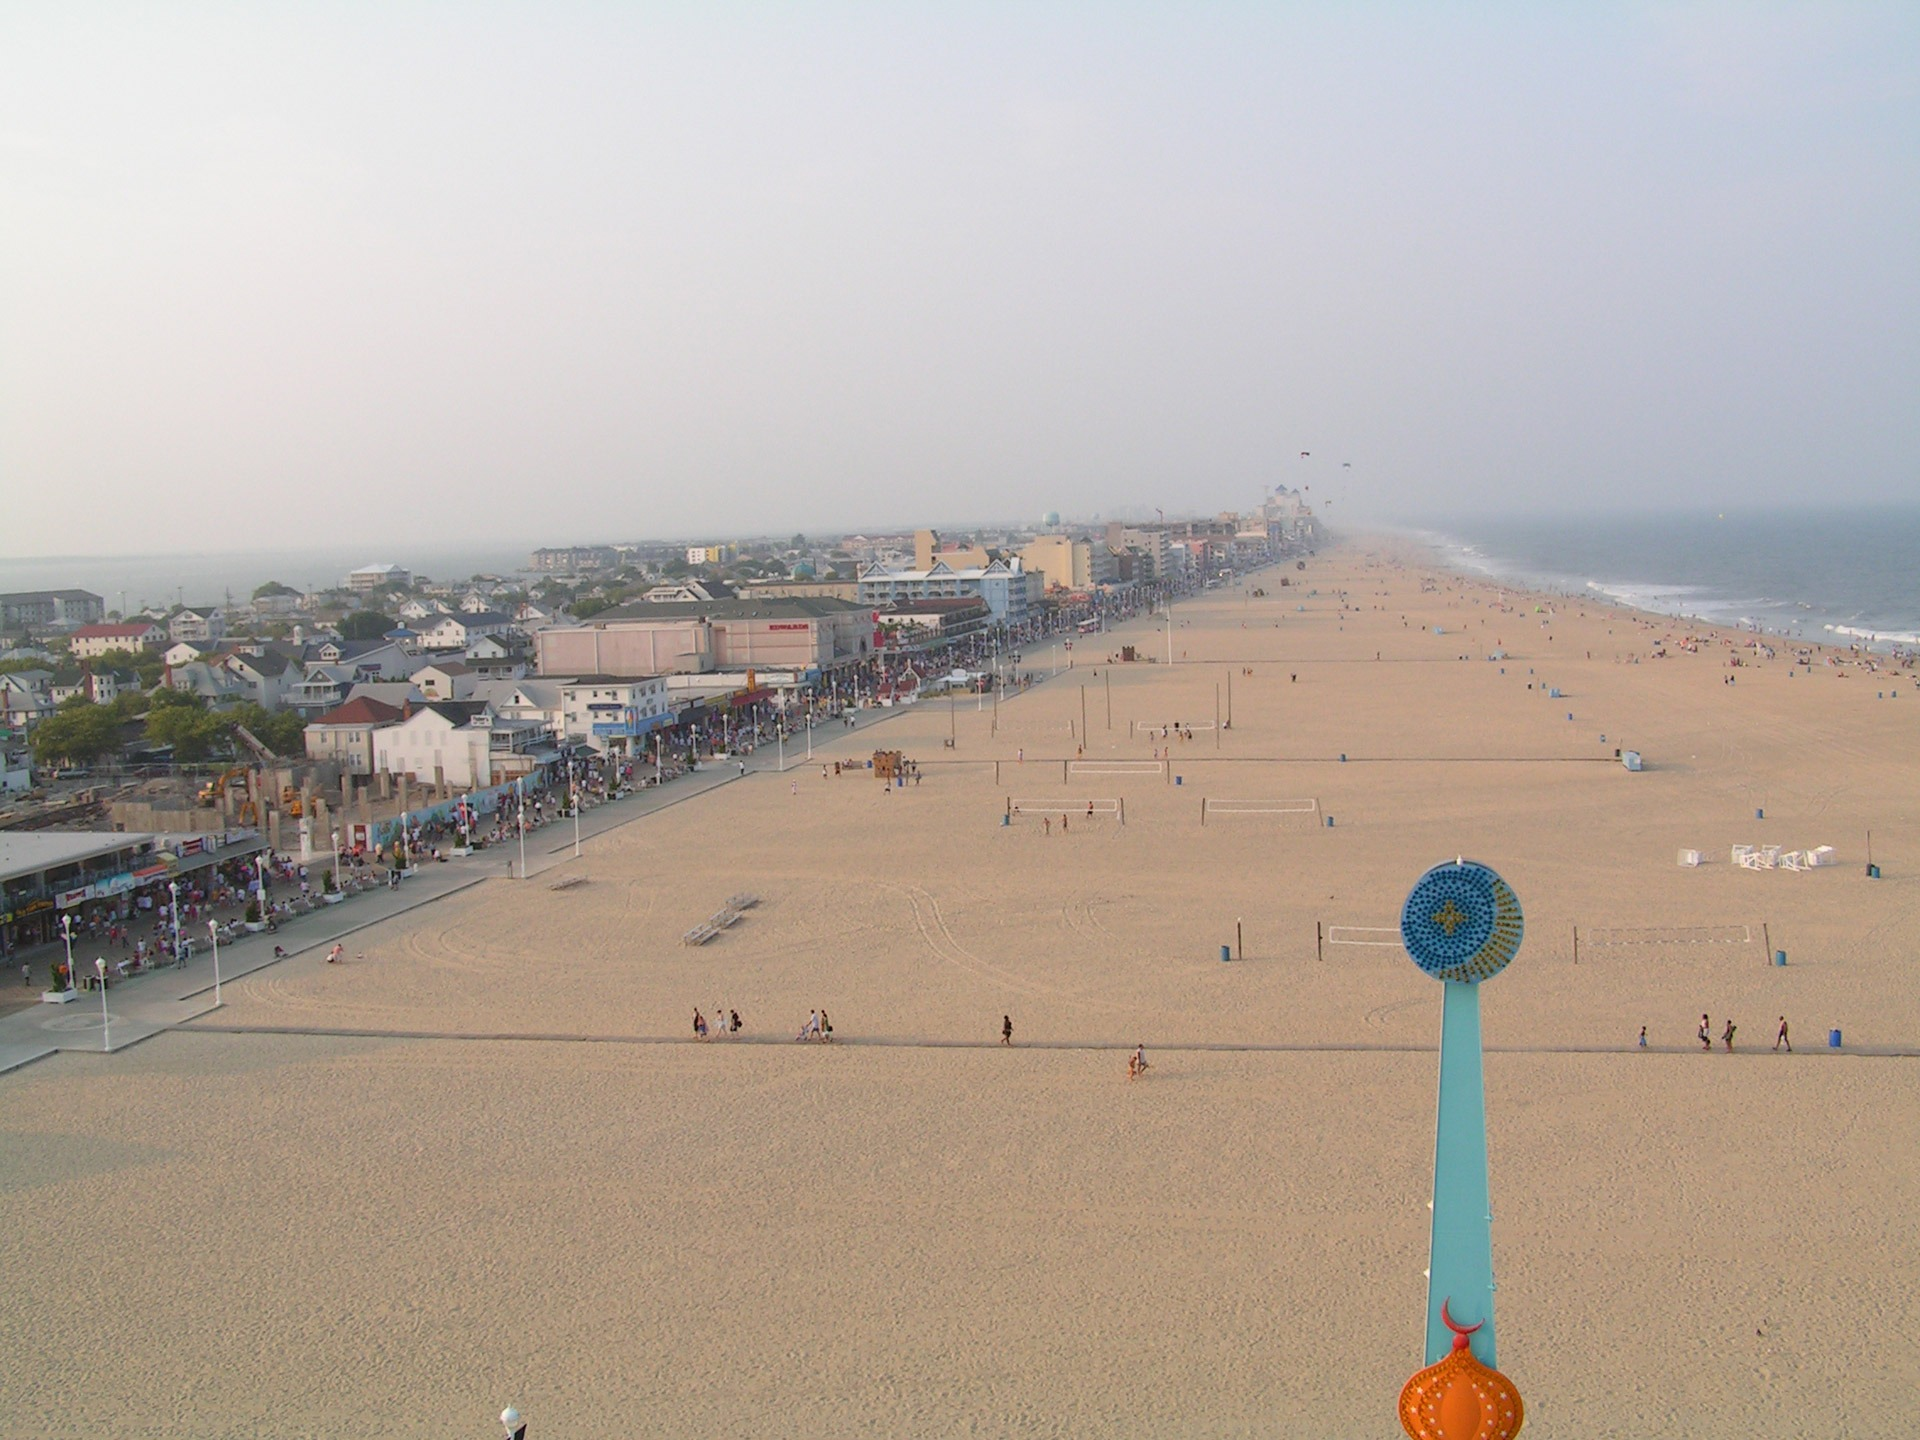 Places to Stay for Couples in Ocean City, MD